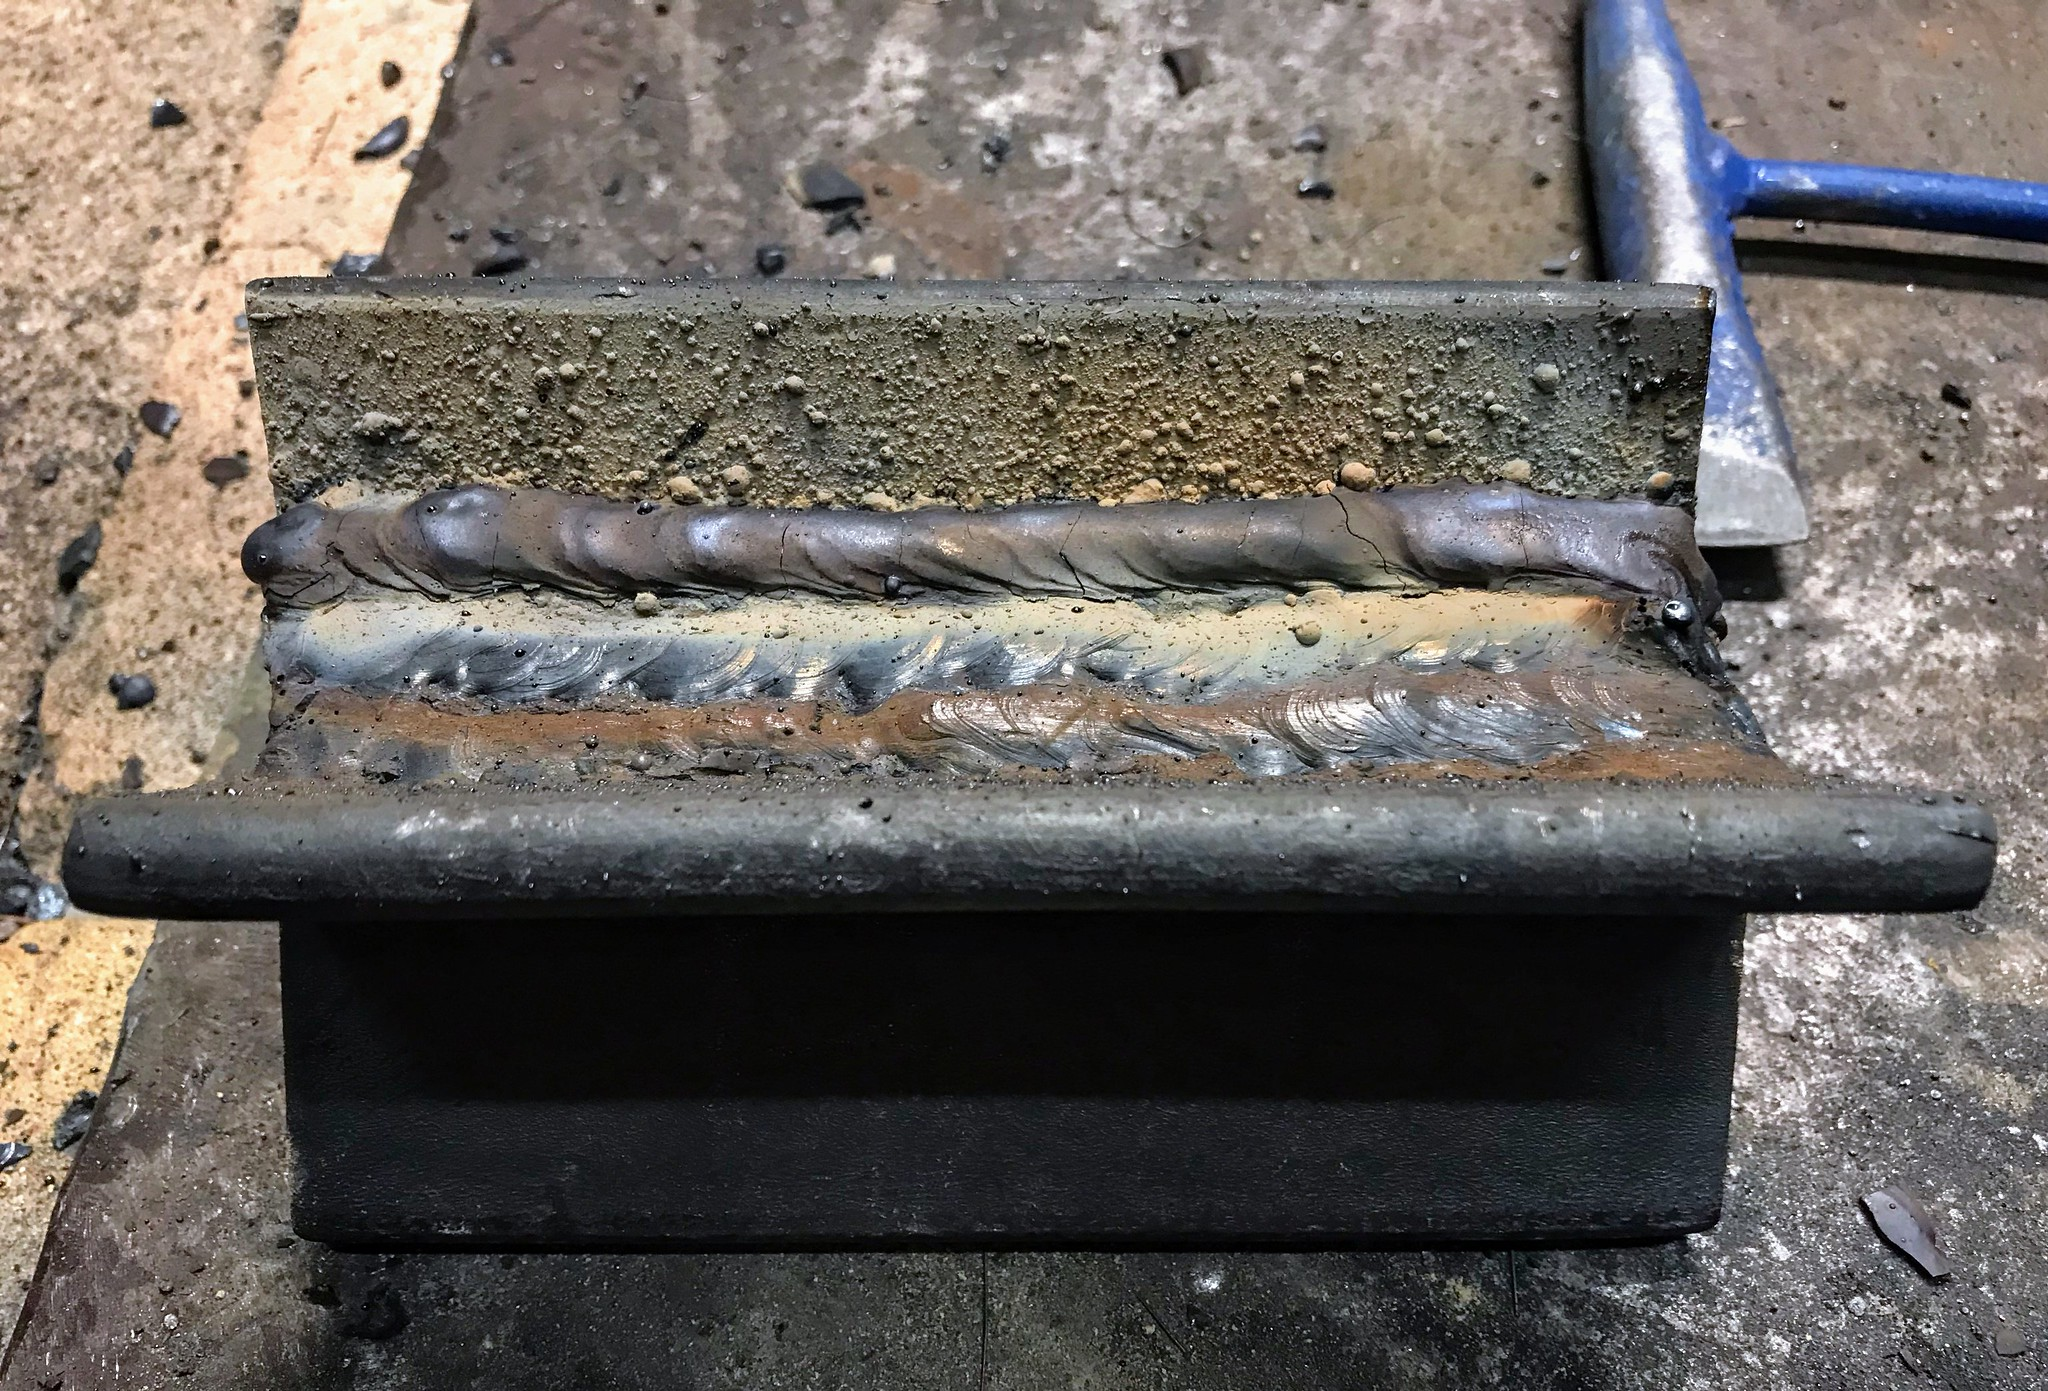 Weld covered in slag